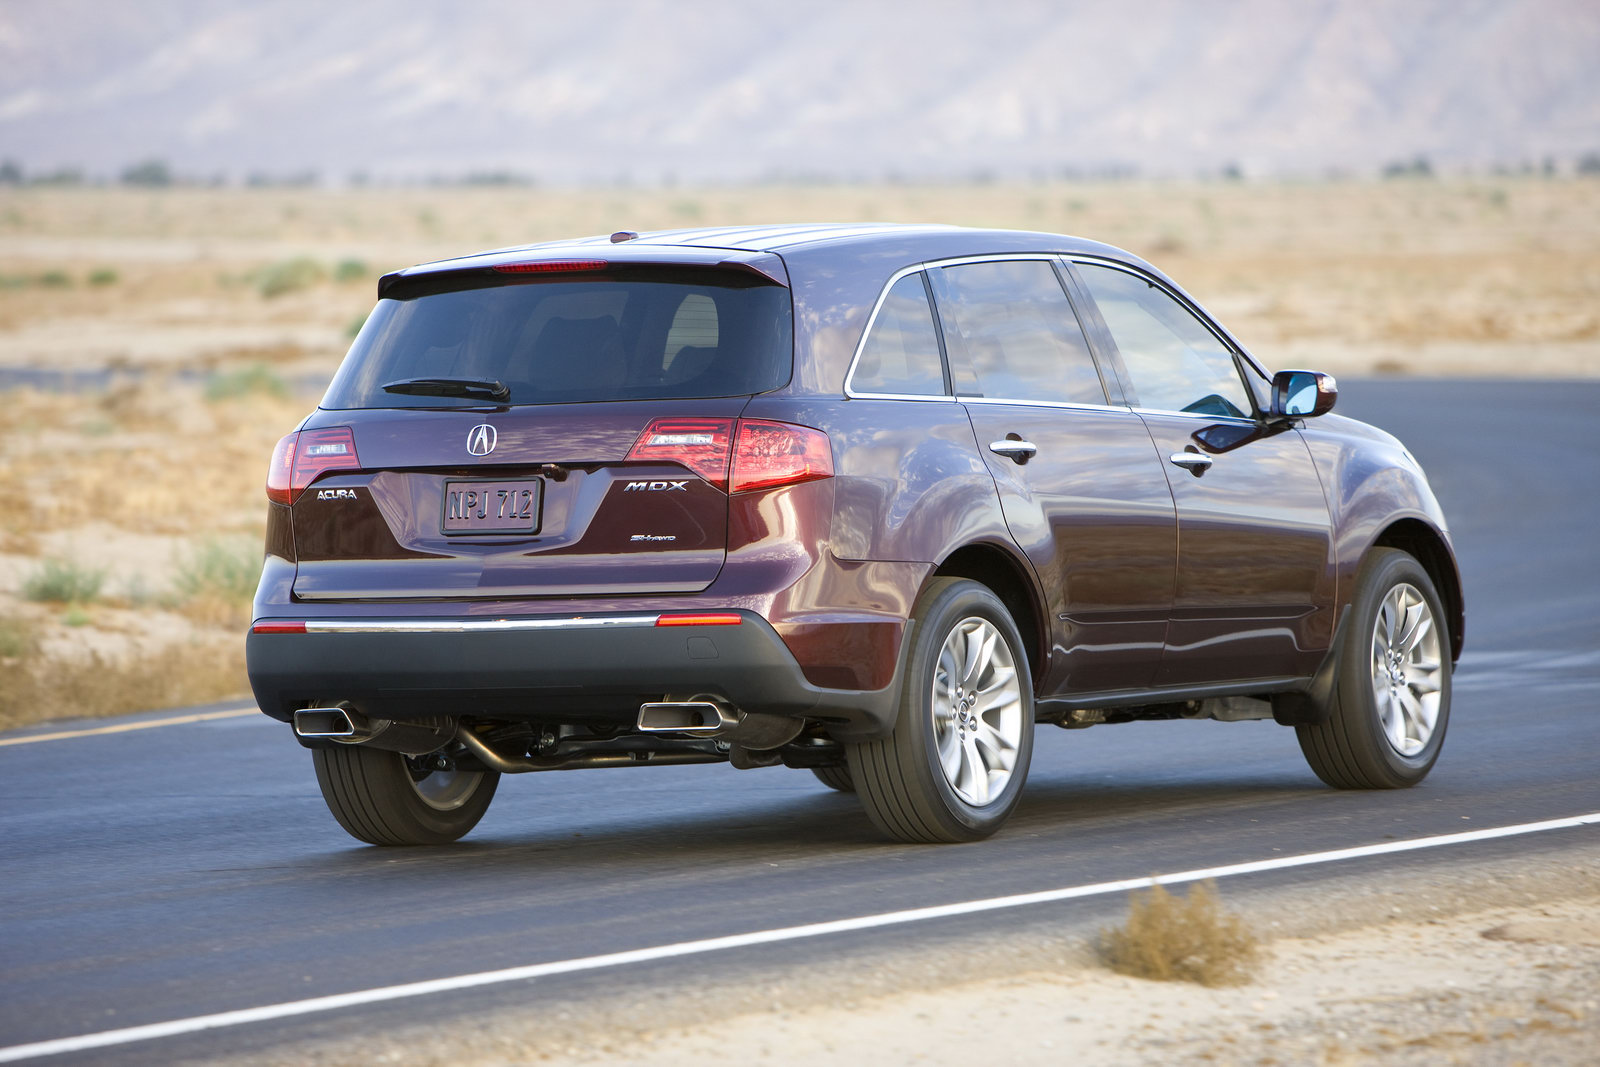 2010 Acura MDX 17 Mildly Facelifted 2010 Acura MDX Priced from $43,040 in the States